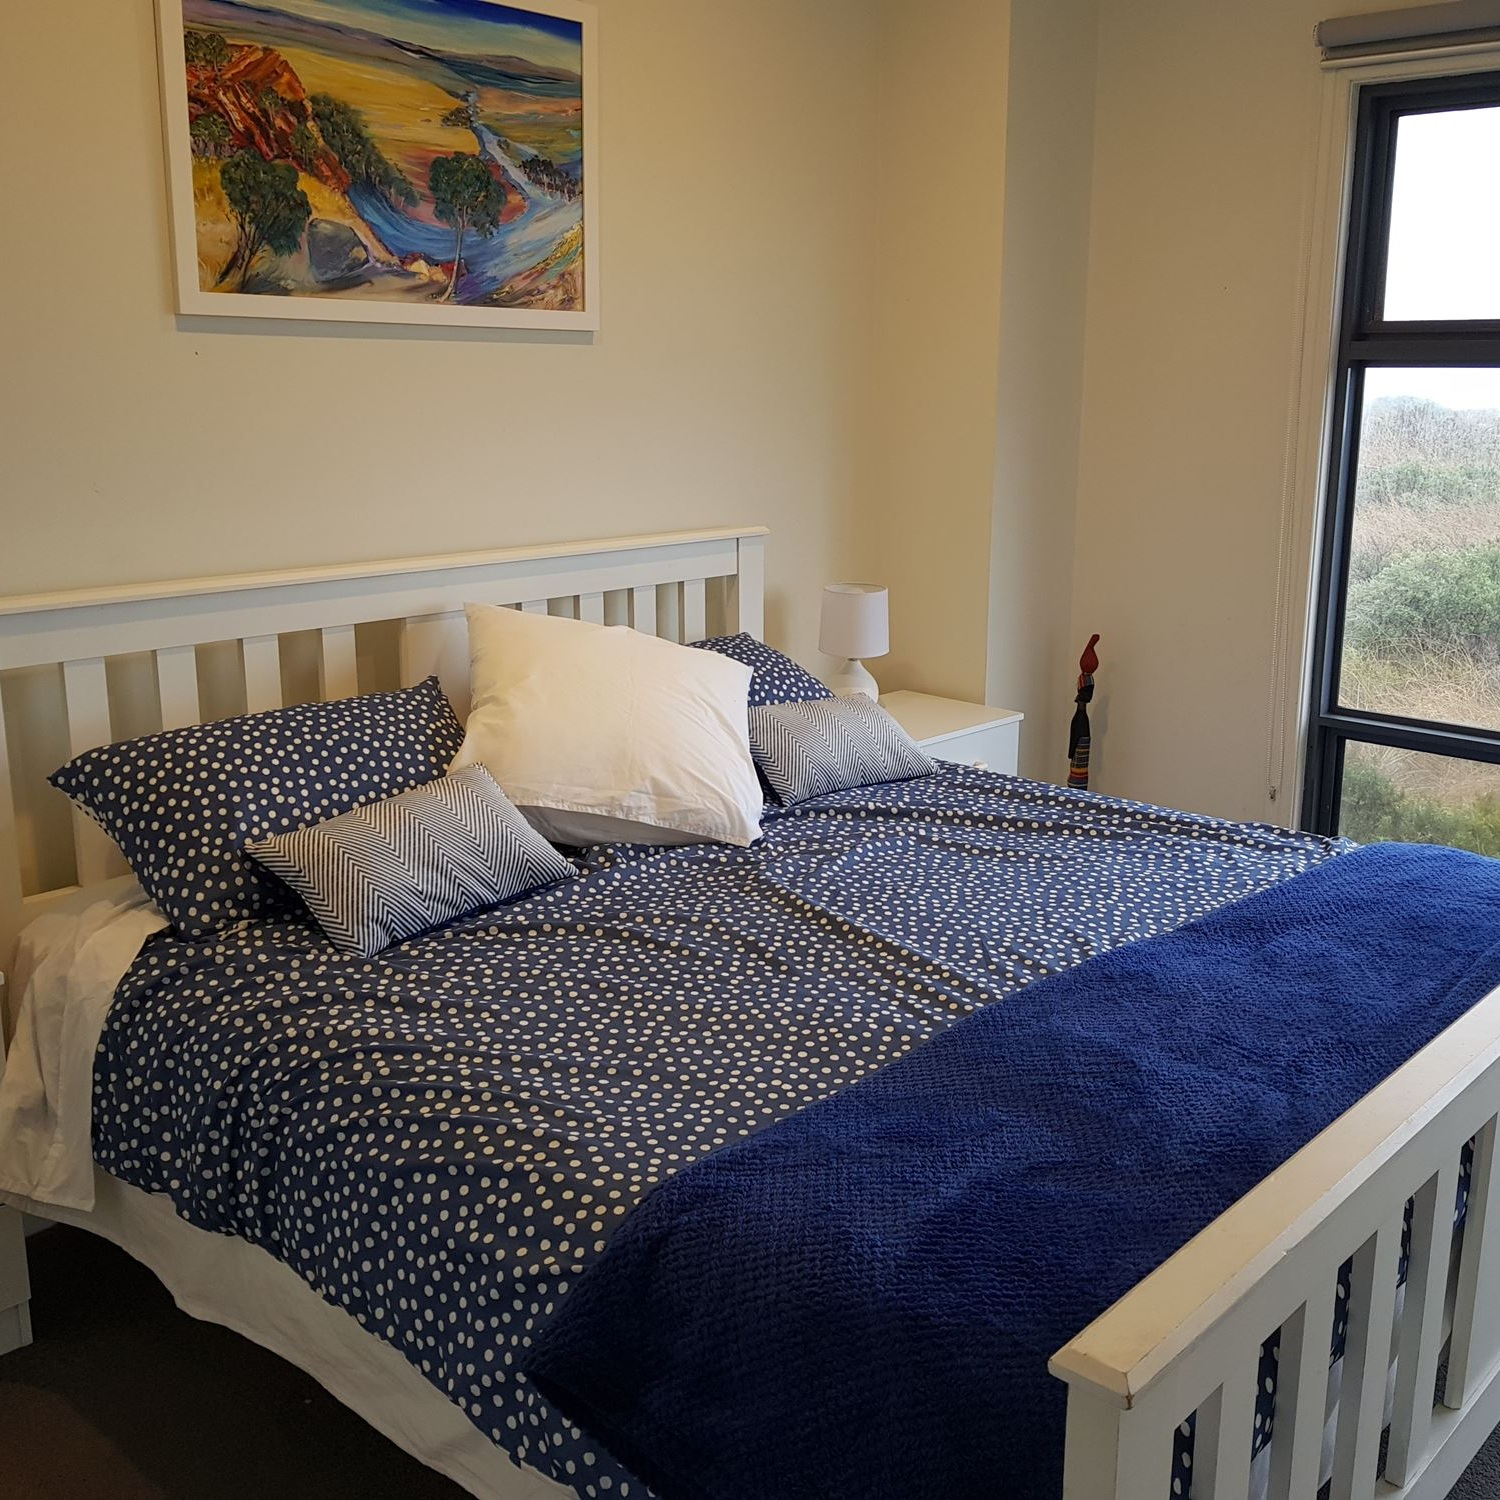 SLEEPS 12 GUESTS - Family, friends, the kids, and all will enjoy the cosy guest bedroom featuring luxurious linens coupled with the classic furnishings to make the accommodation become an ocean breeze.